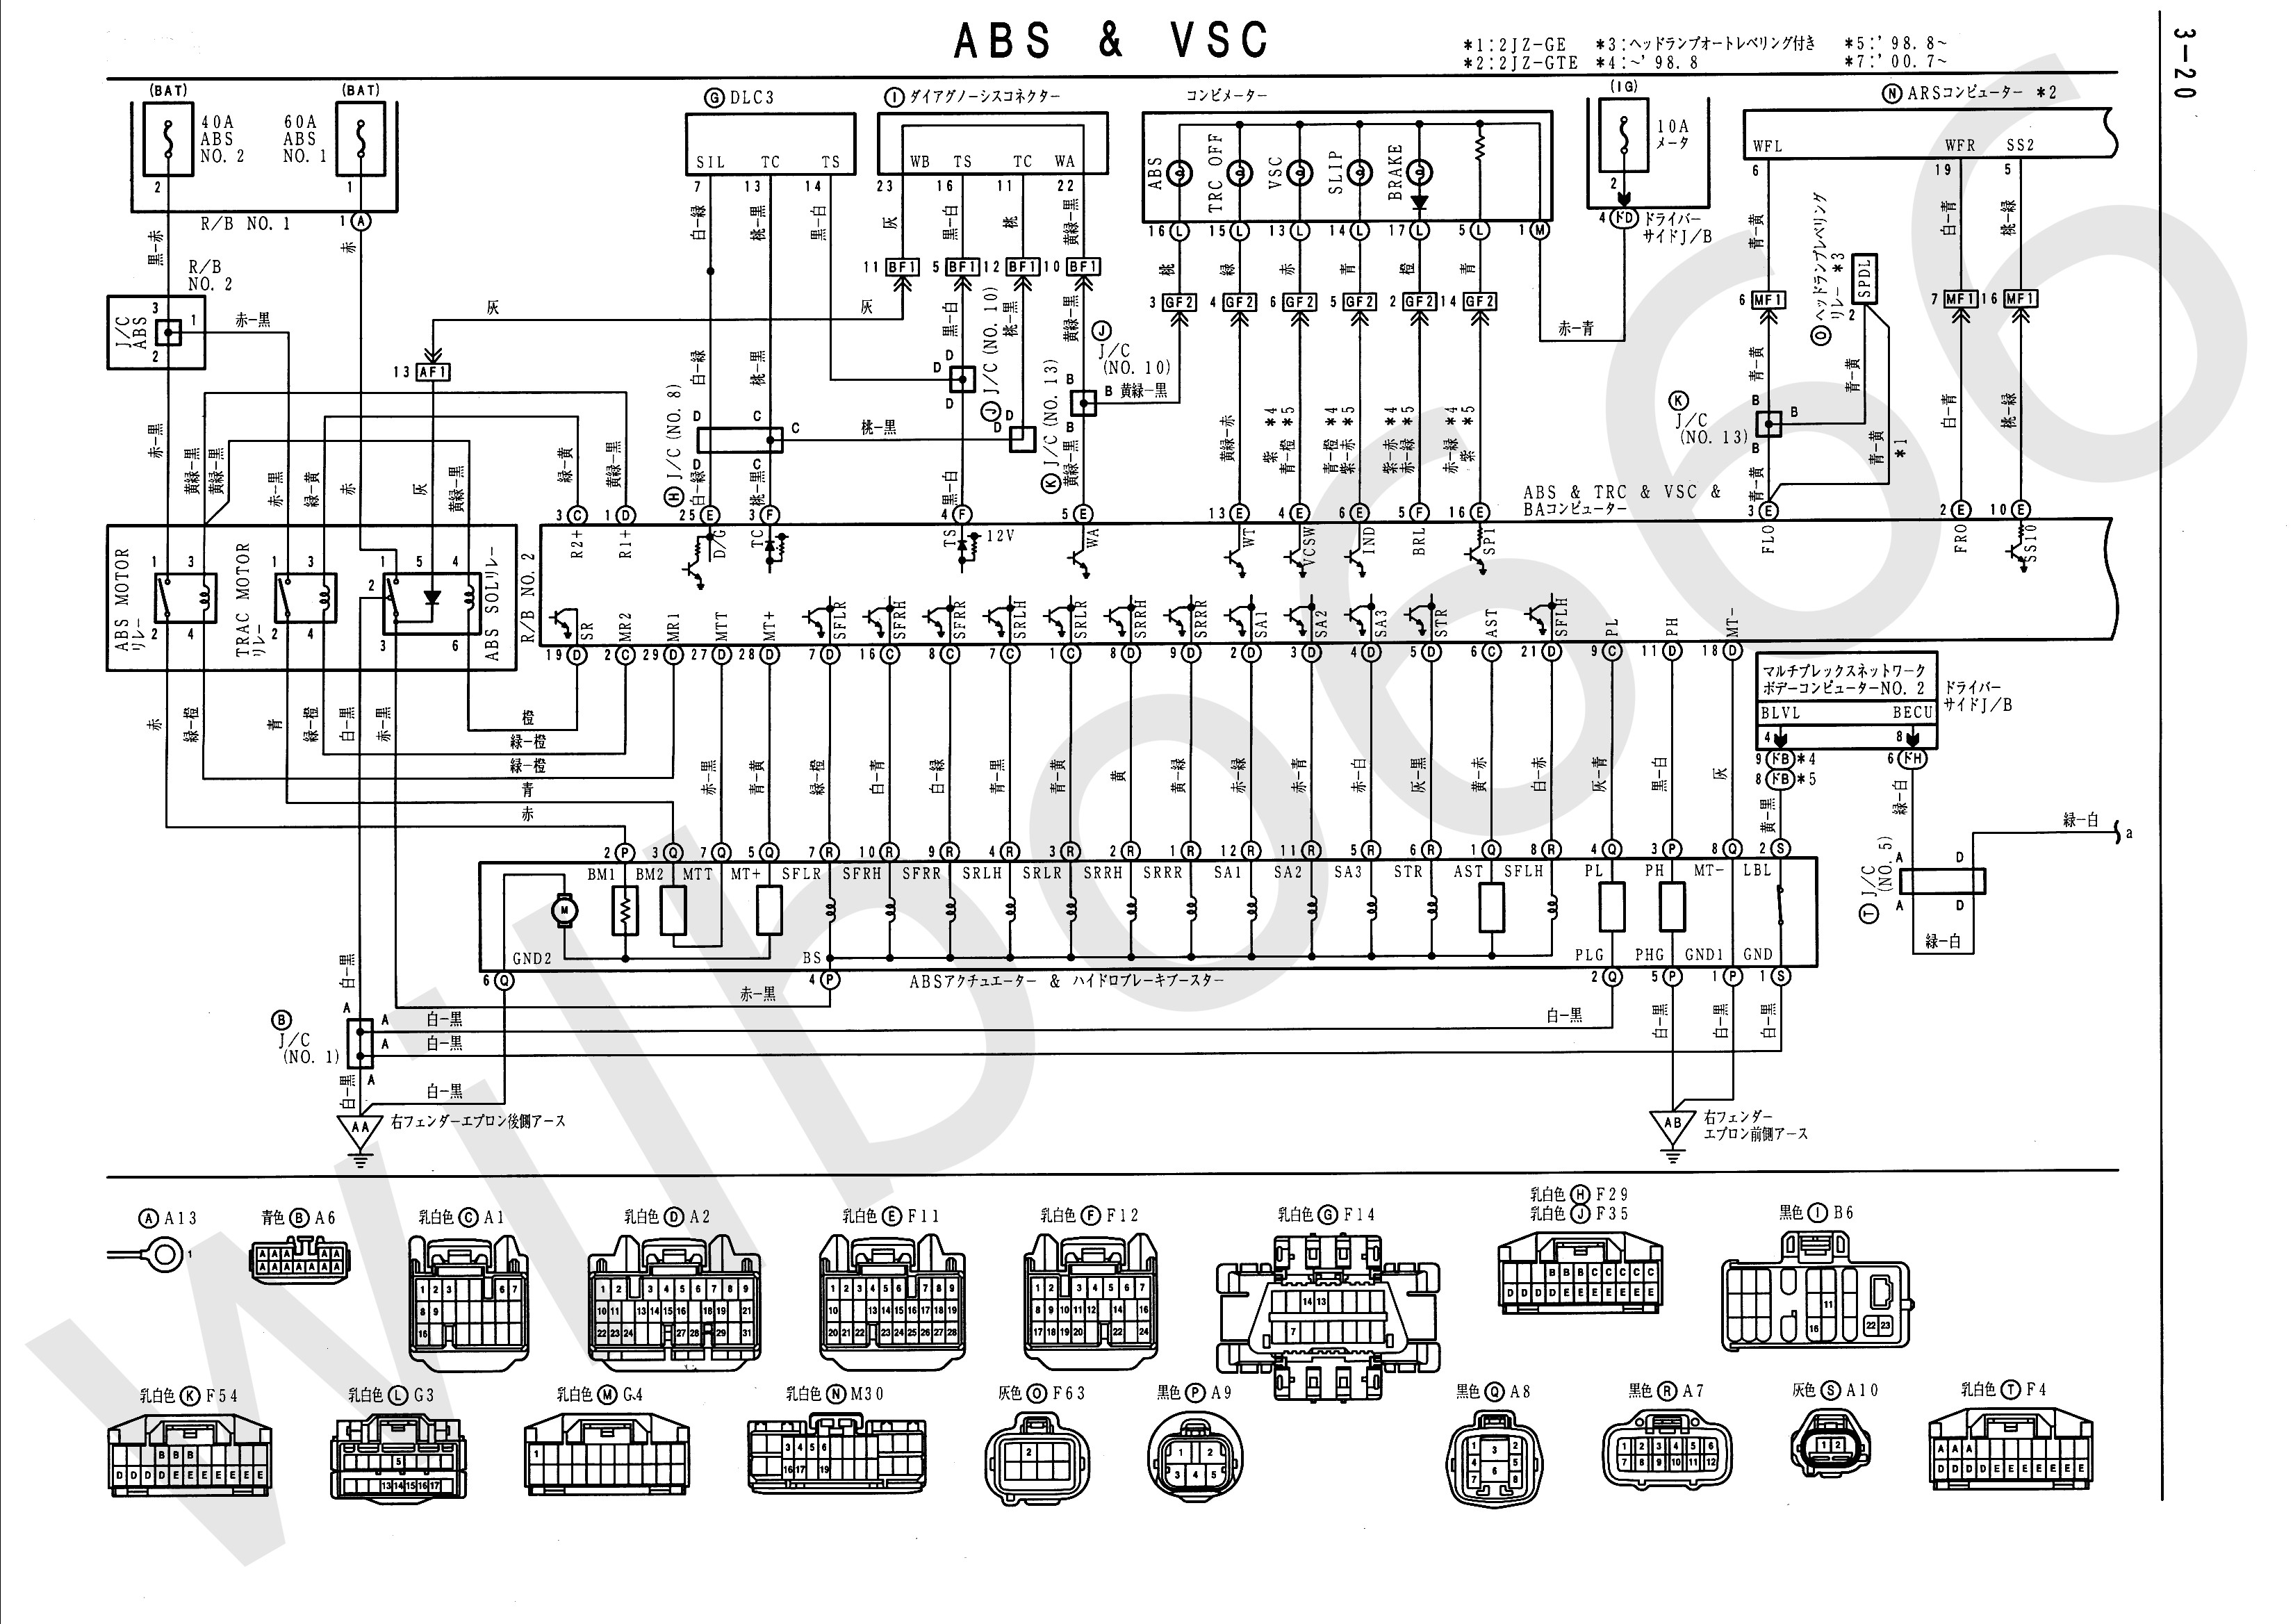 DIAGRAM] Daihatsu Hijet Van Wiring Diagram FULL Version HD Quality Wiring  Diagram - SHAREDIAGRAMS.NUITDEBOUTAIX.FRsharediagrams.nuitdeboutaix.fr